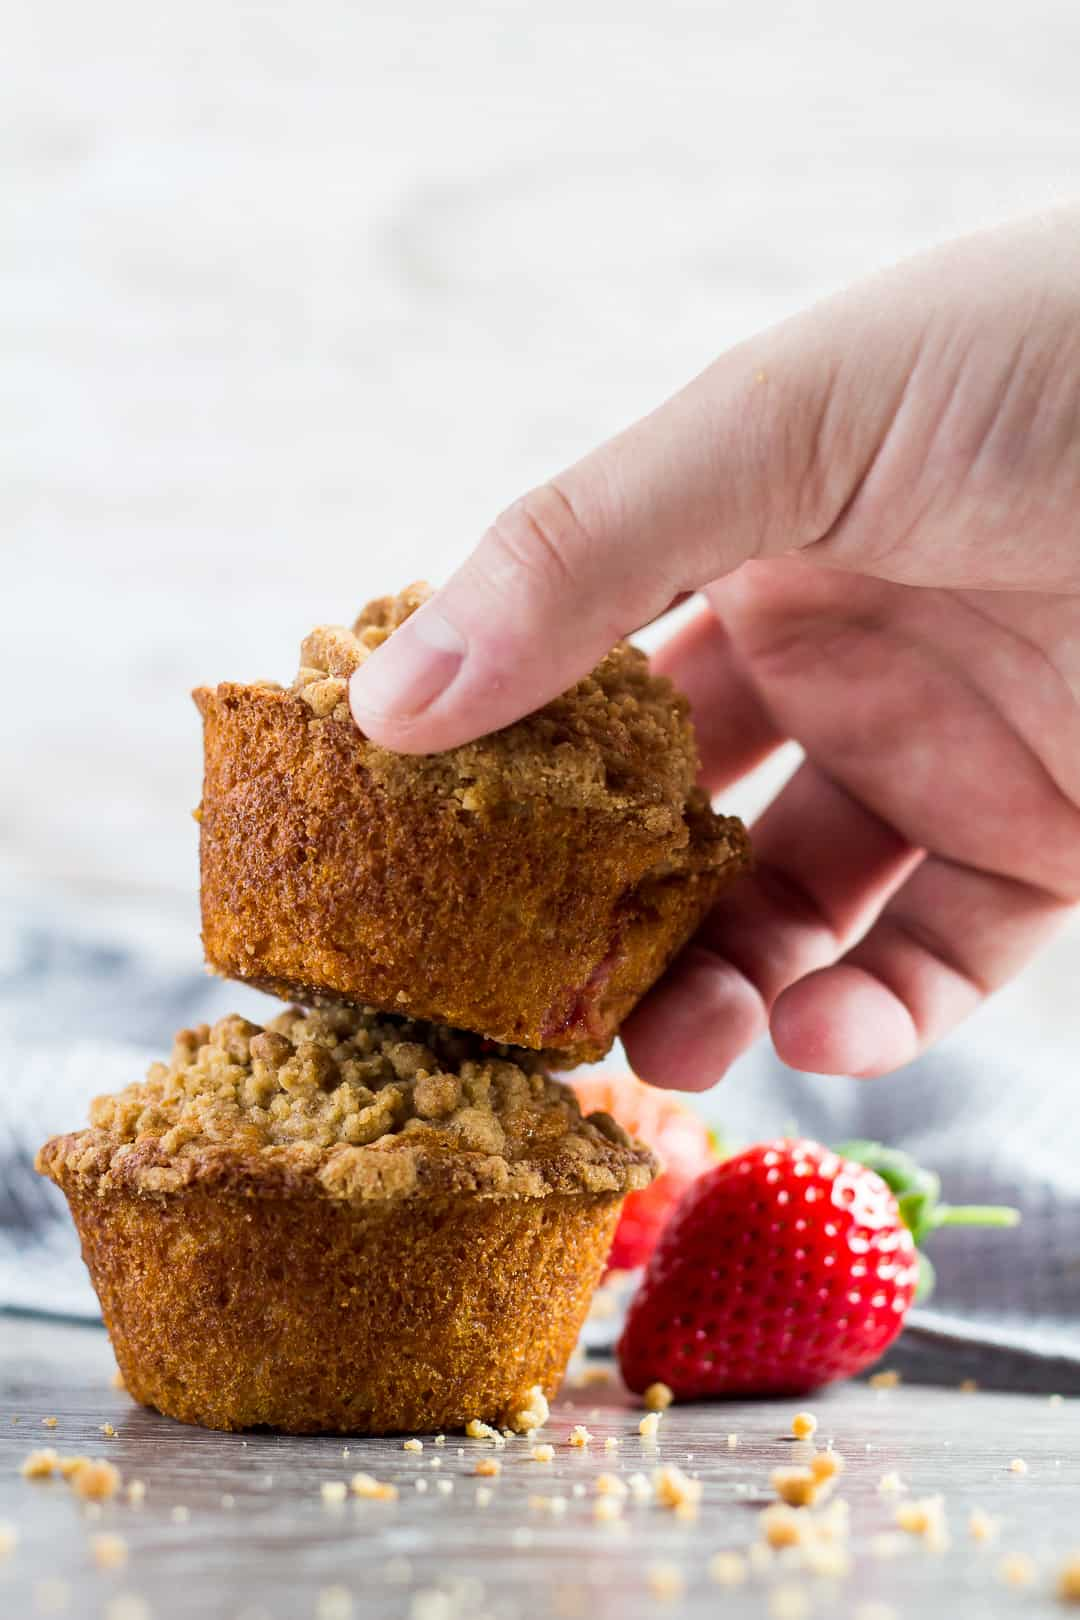 A Strawberry Crumb Muffin being picked up by hand.